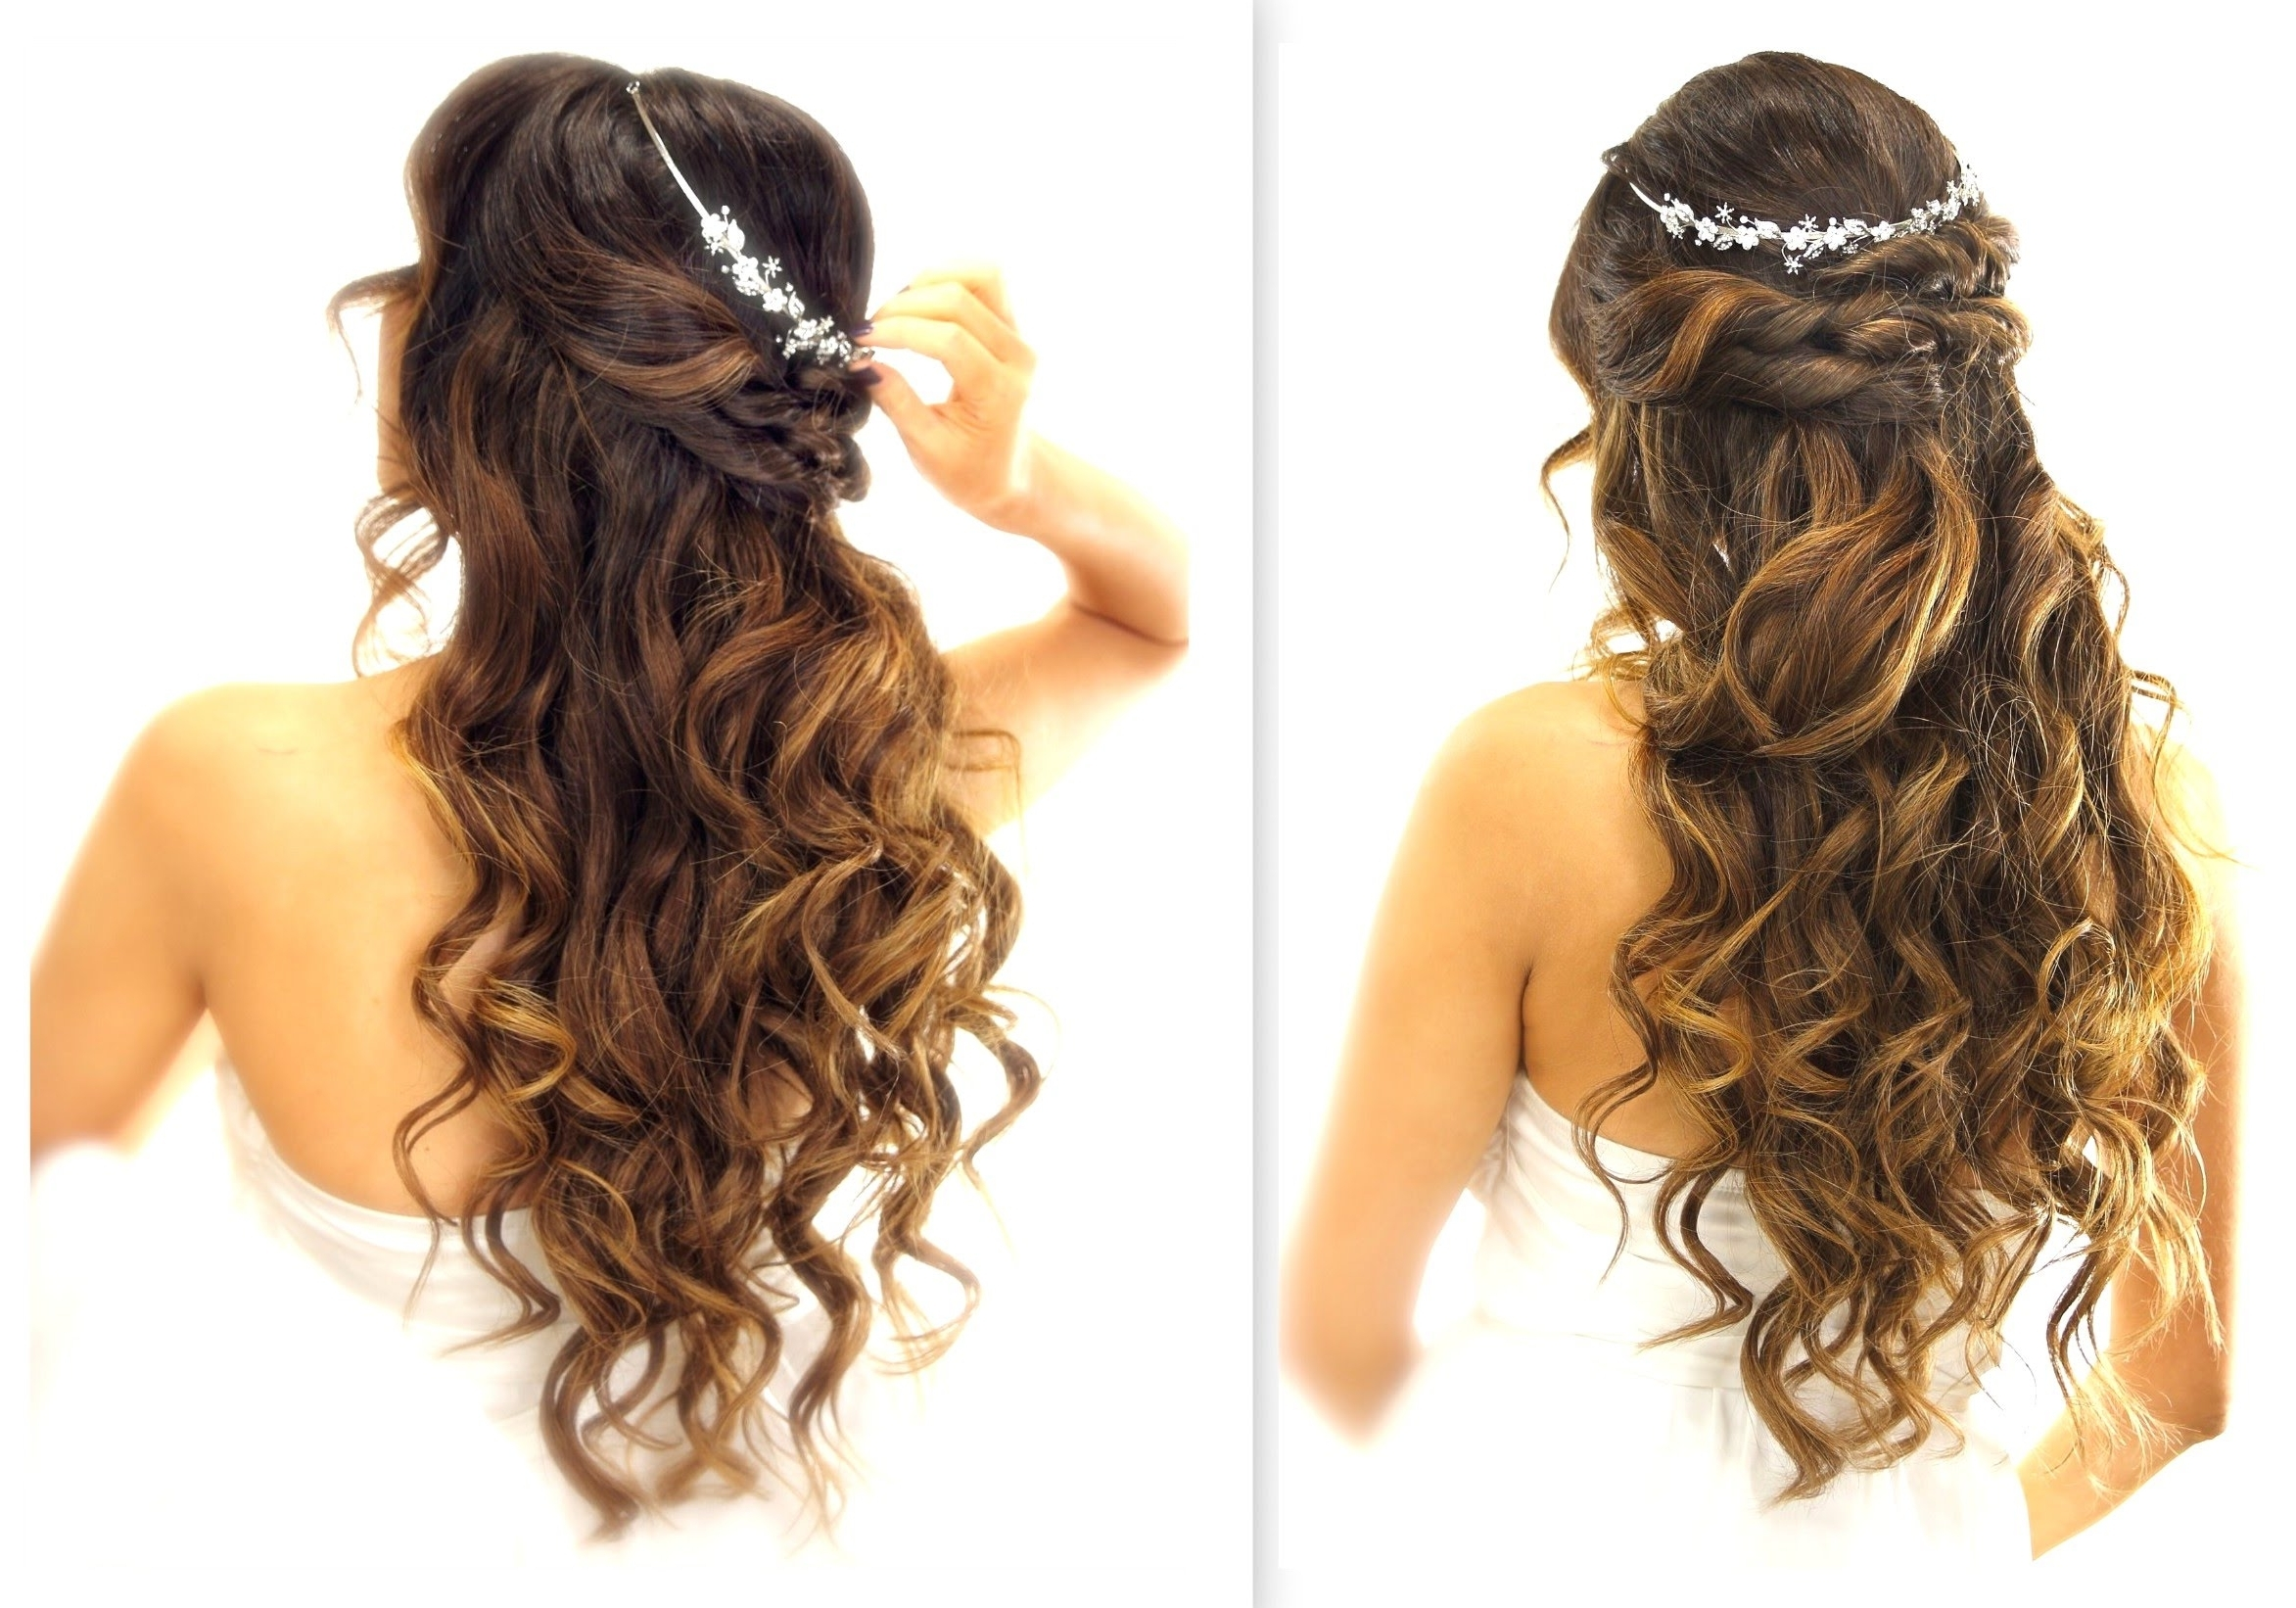 Bridal Hairstyles (View 3 of 15)